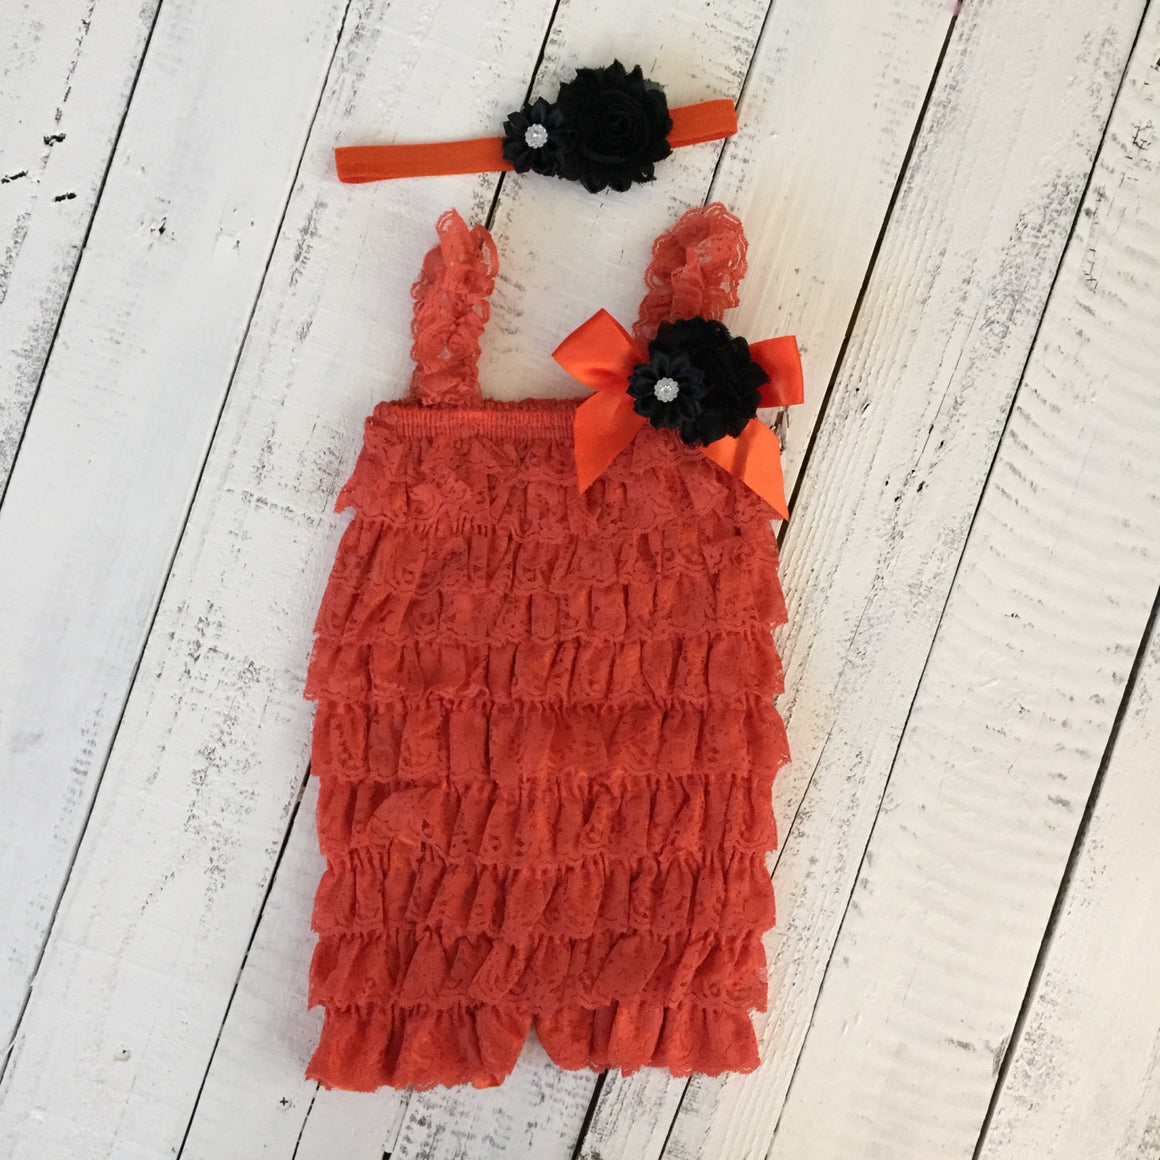 Lace Embellished Orange Petti Romper & Headband